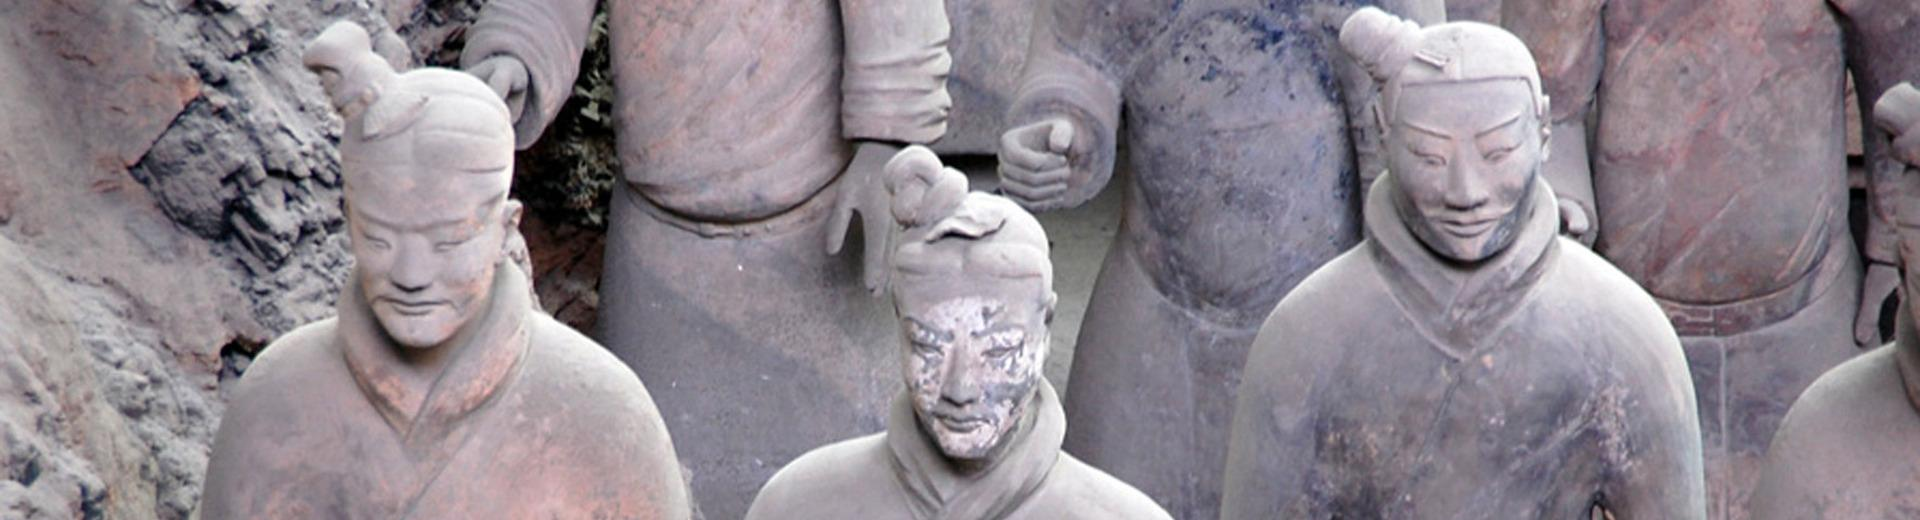 TerracottaWarriors in Xi'an   Credit APT feature